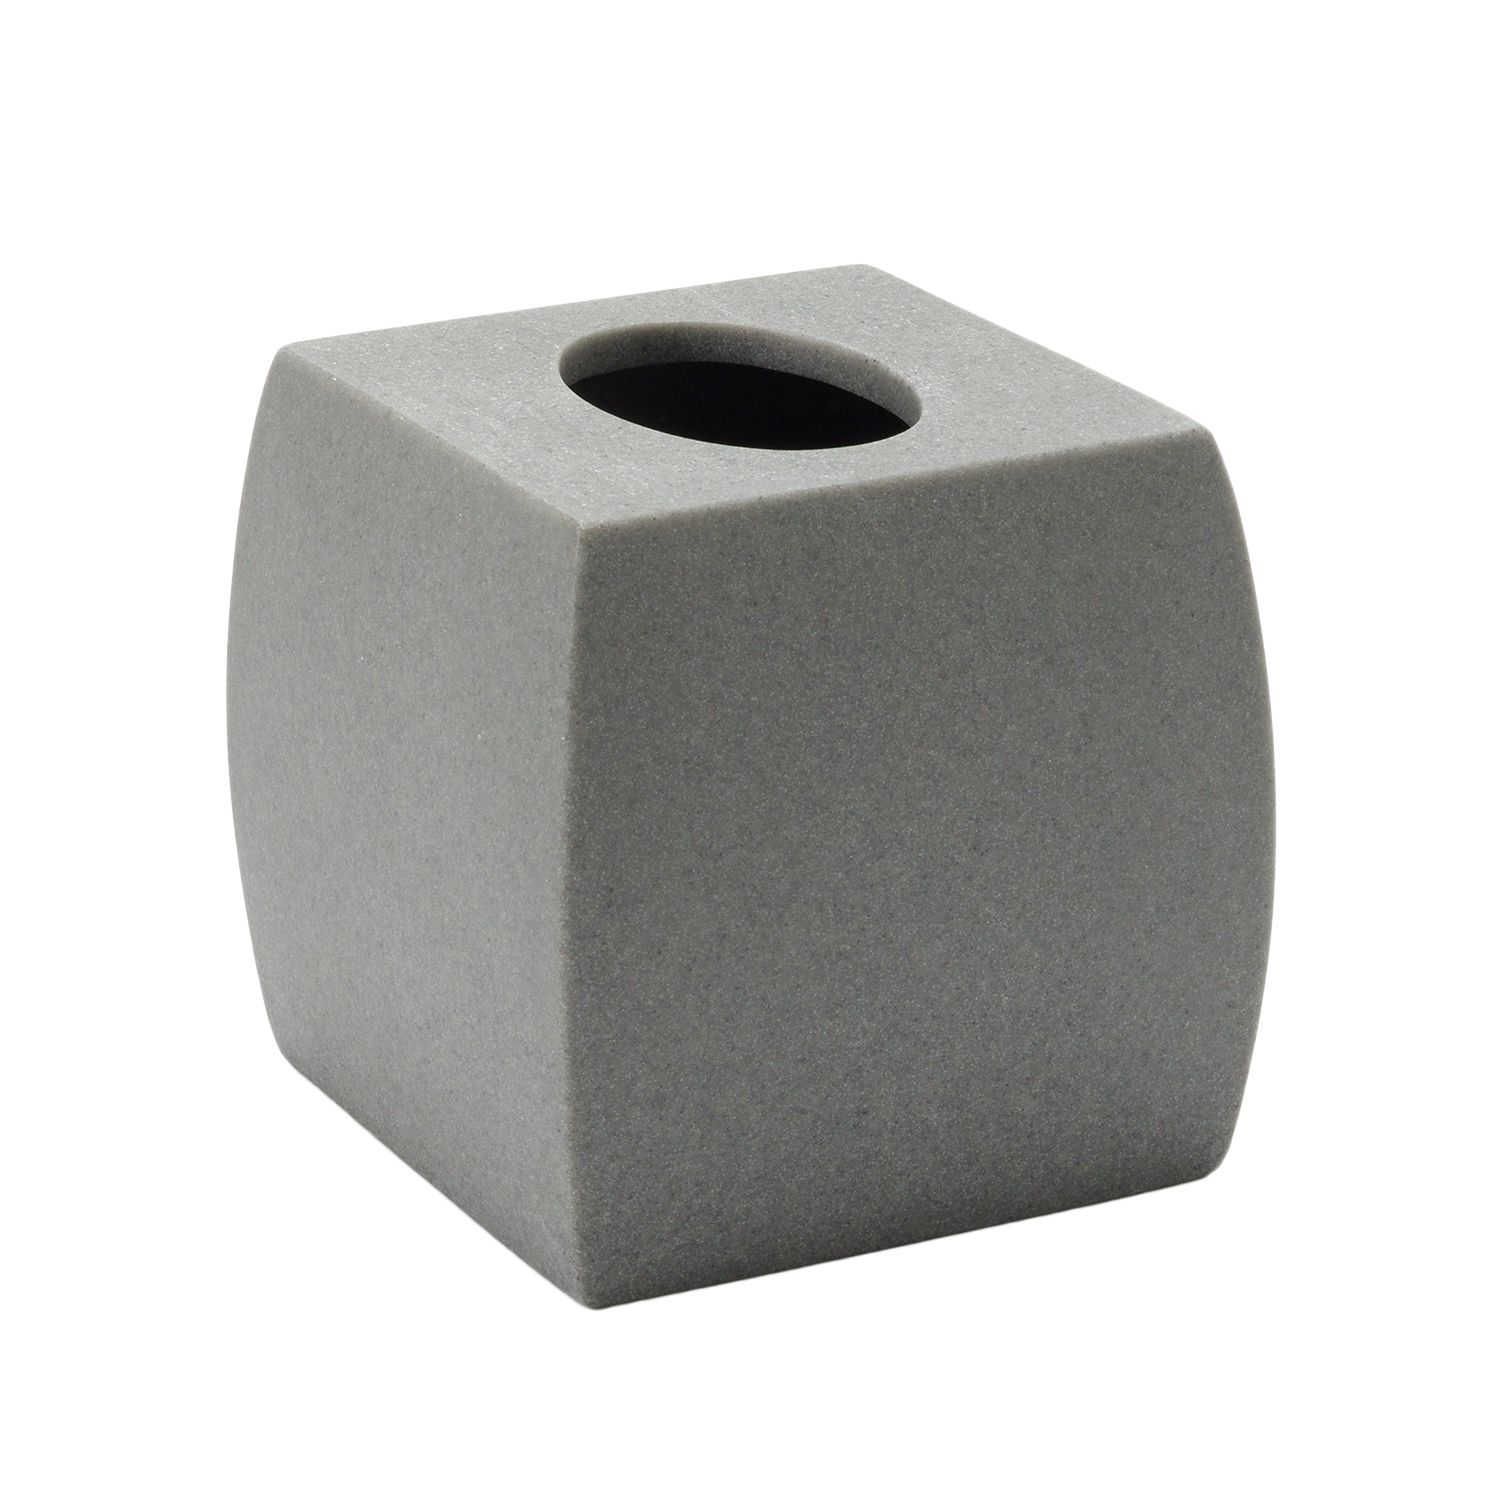 SONOMA Goods For Life™ Resin Tissue Box Cover. Sand Gray